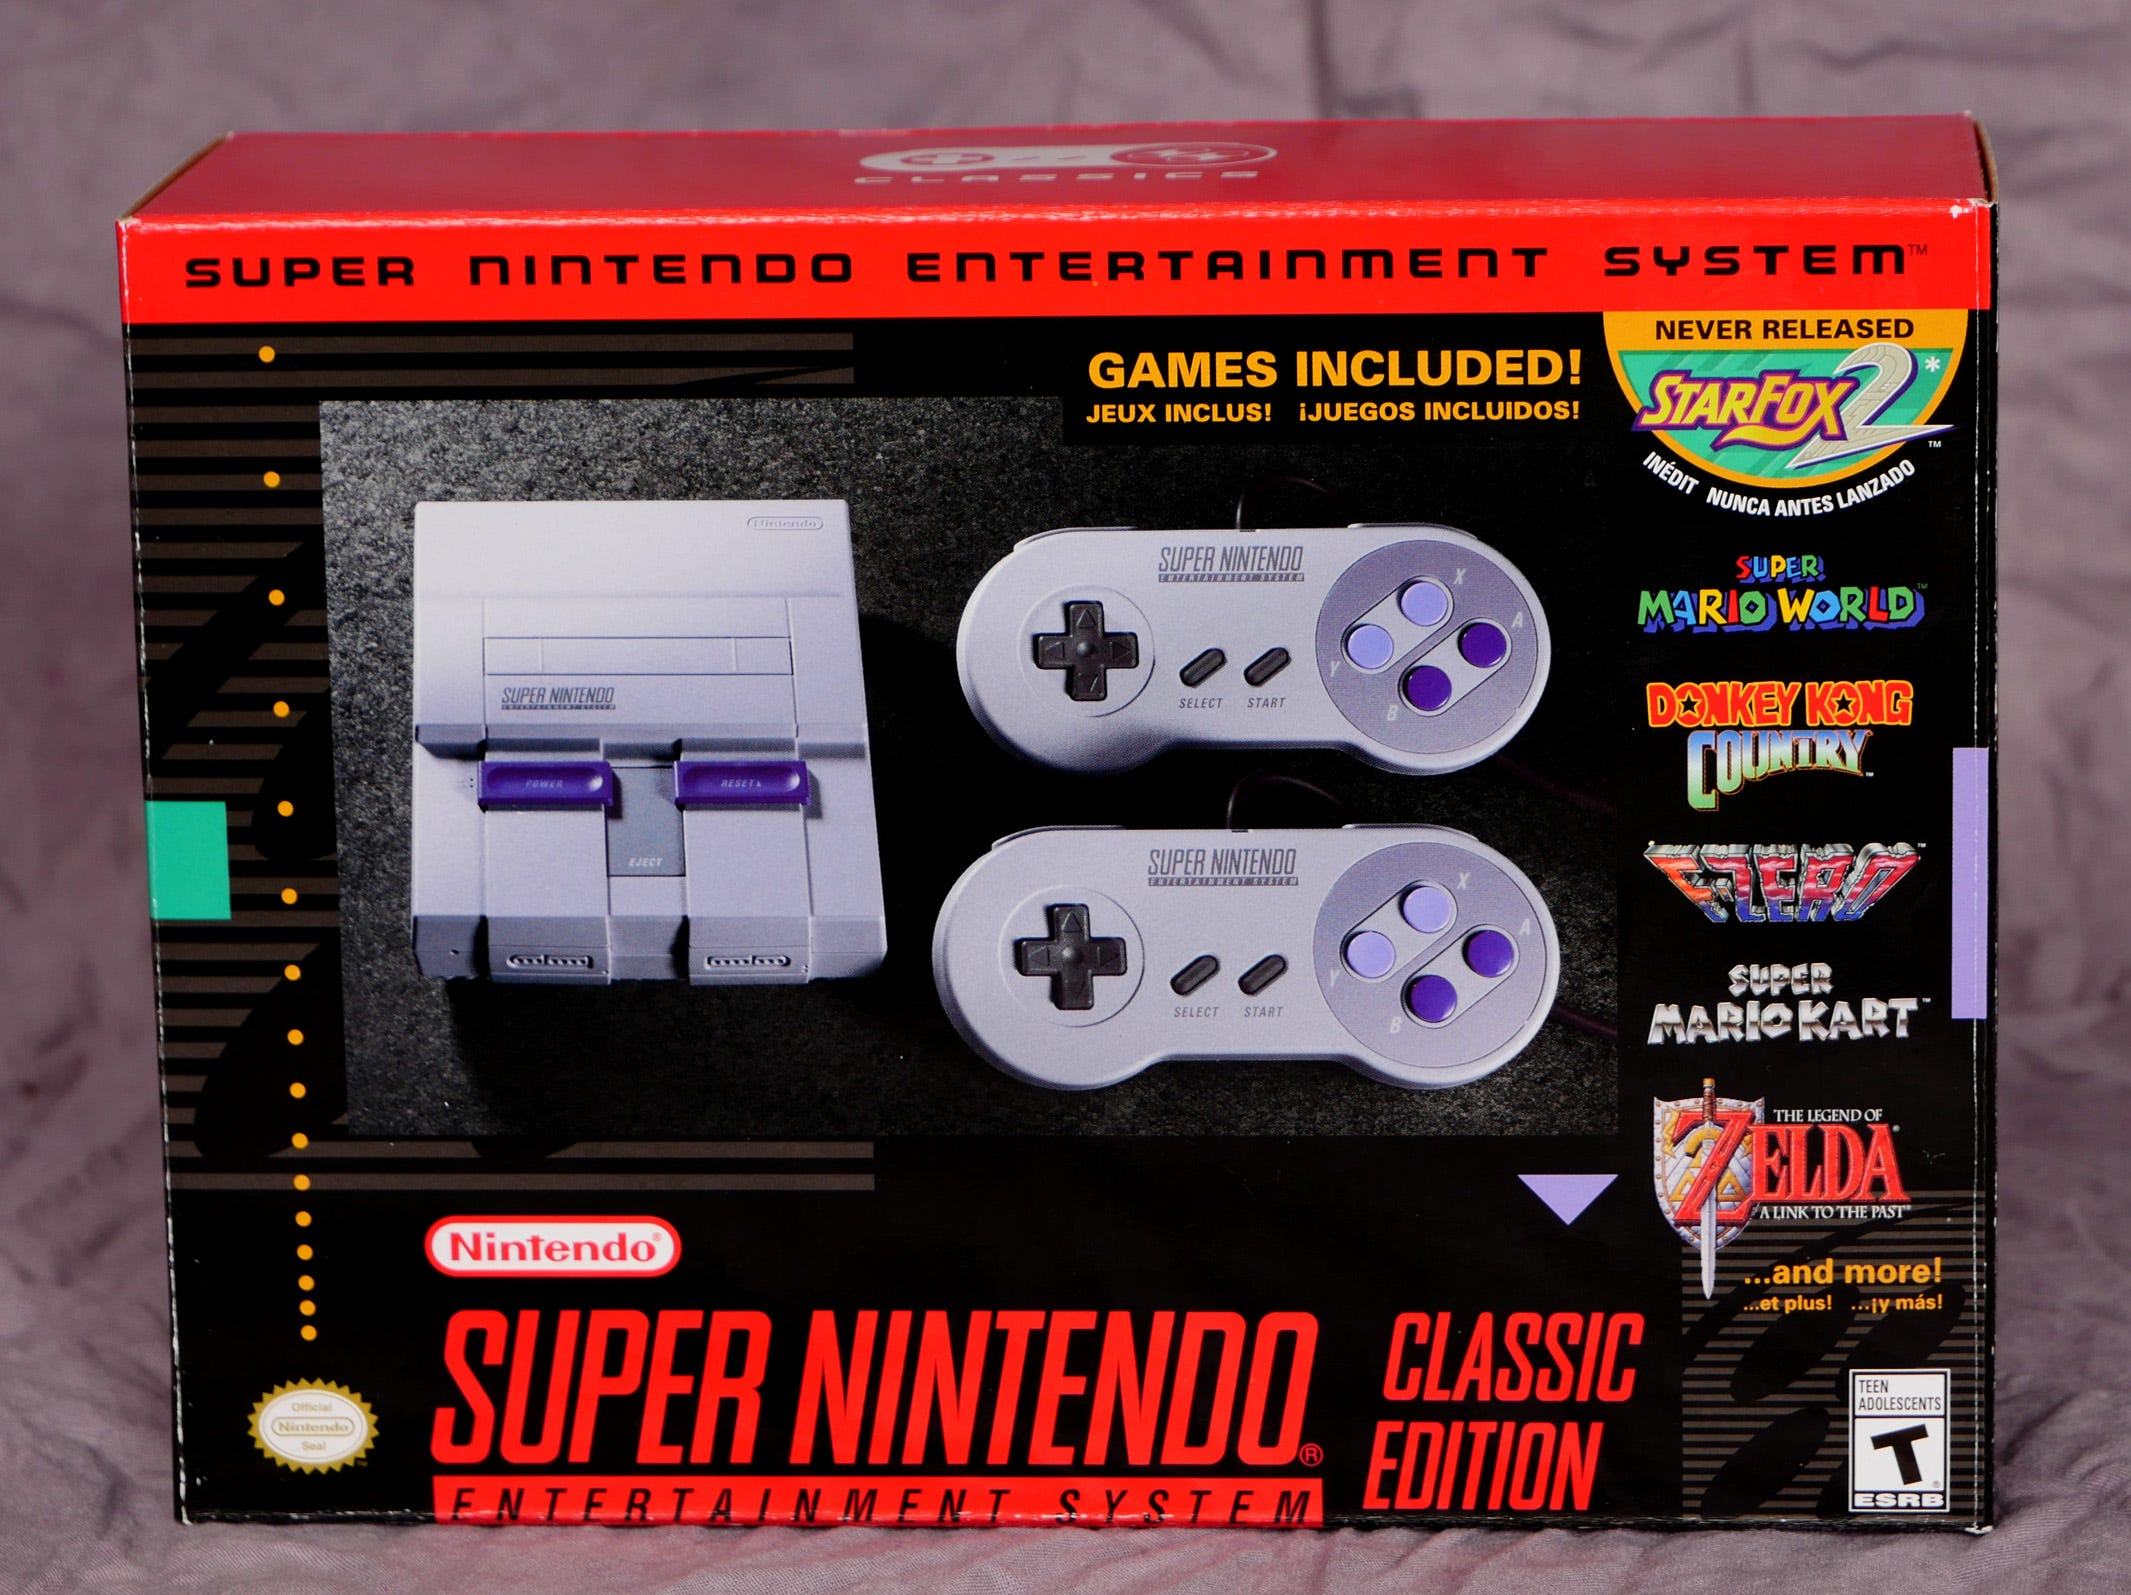 Nintendo Classic Edition SNES console, $79.99. This mini game console is pre-loaded with classic games.